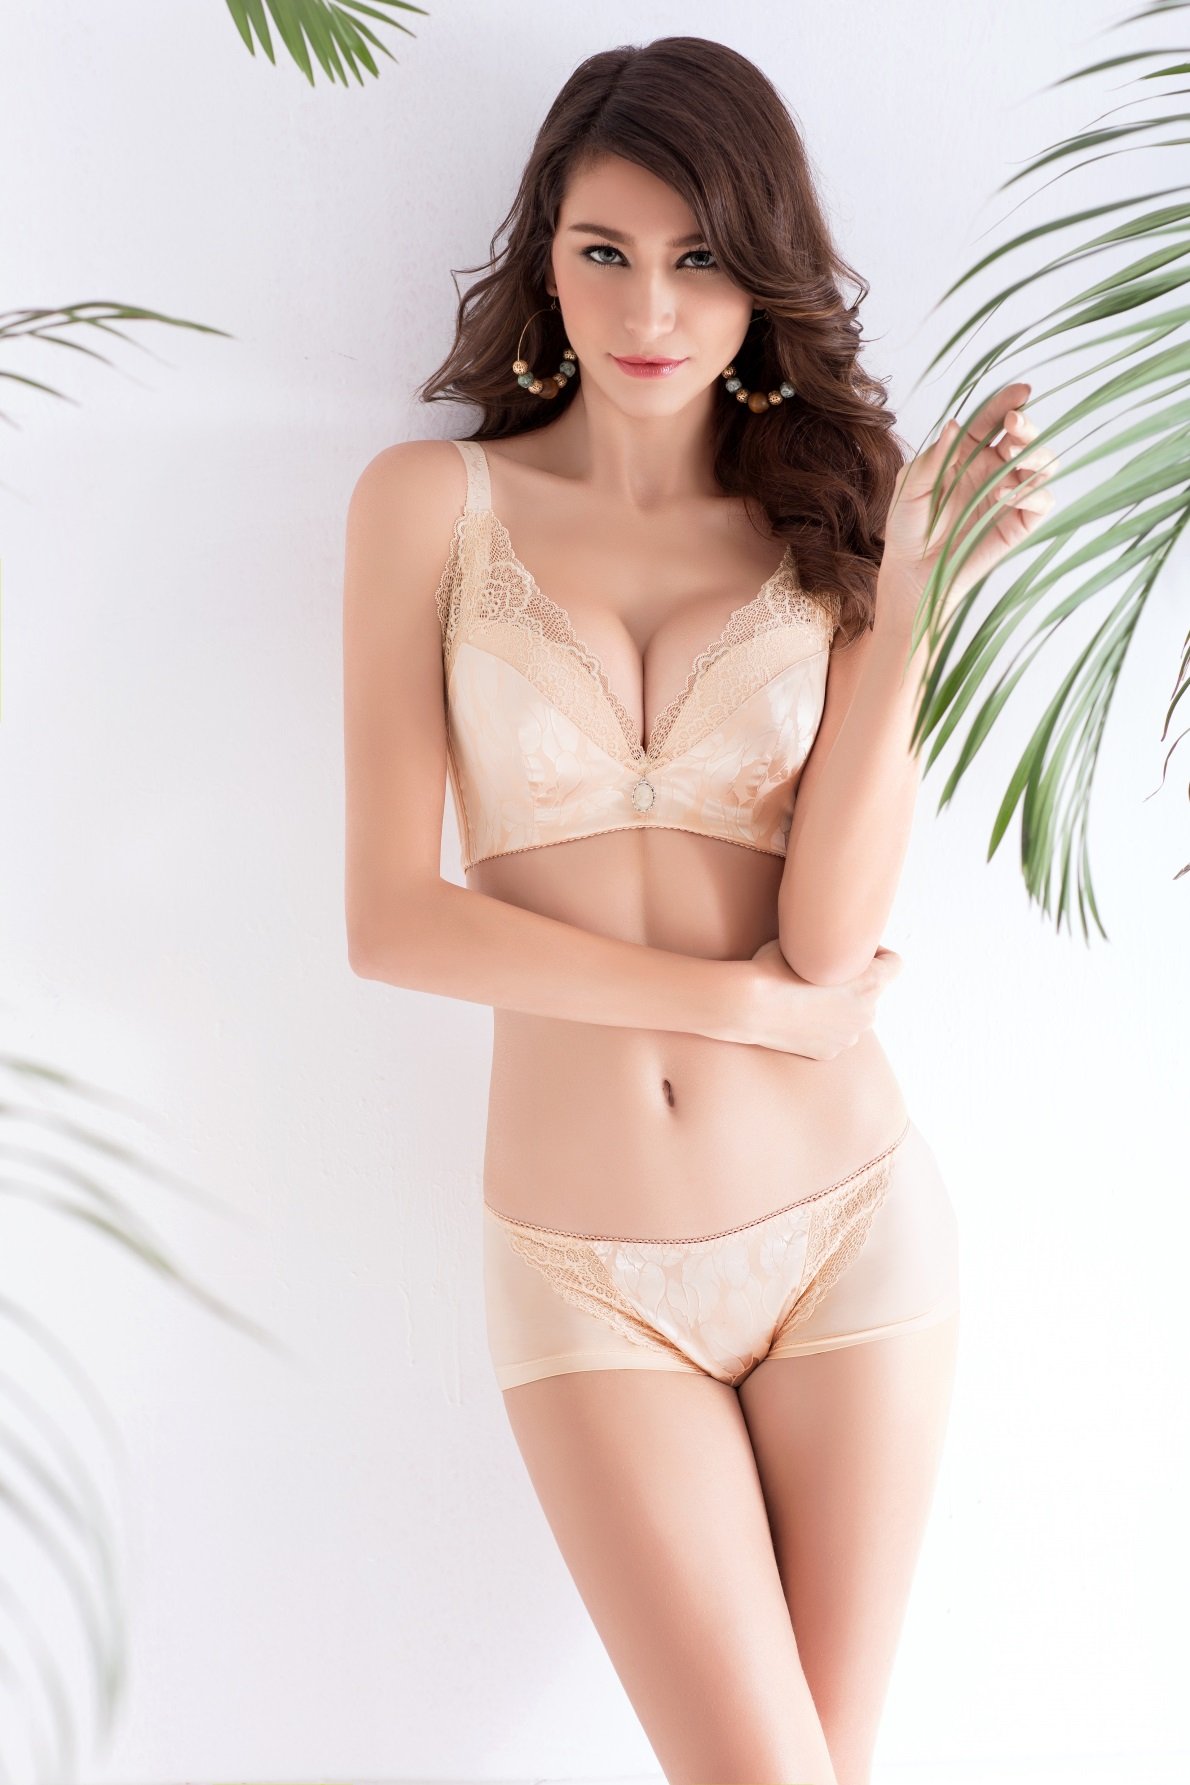 f081be7597393 Europe Girl sexy lace bra set gather adjustable underwear sets for women B  C Cup